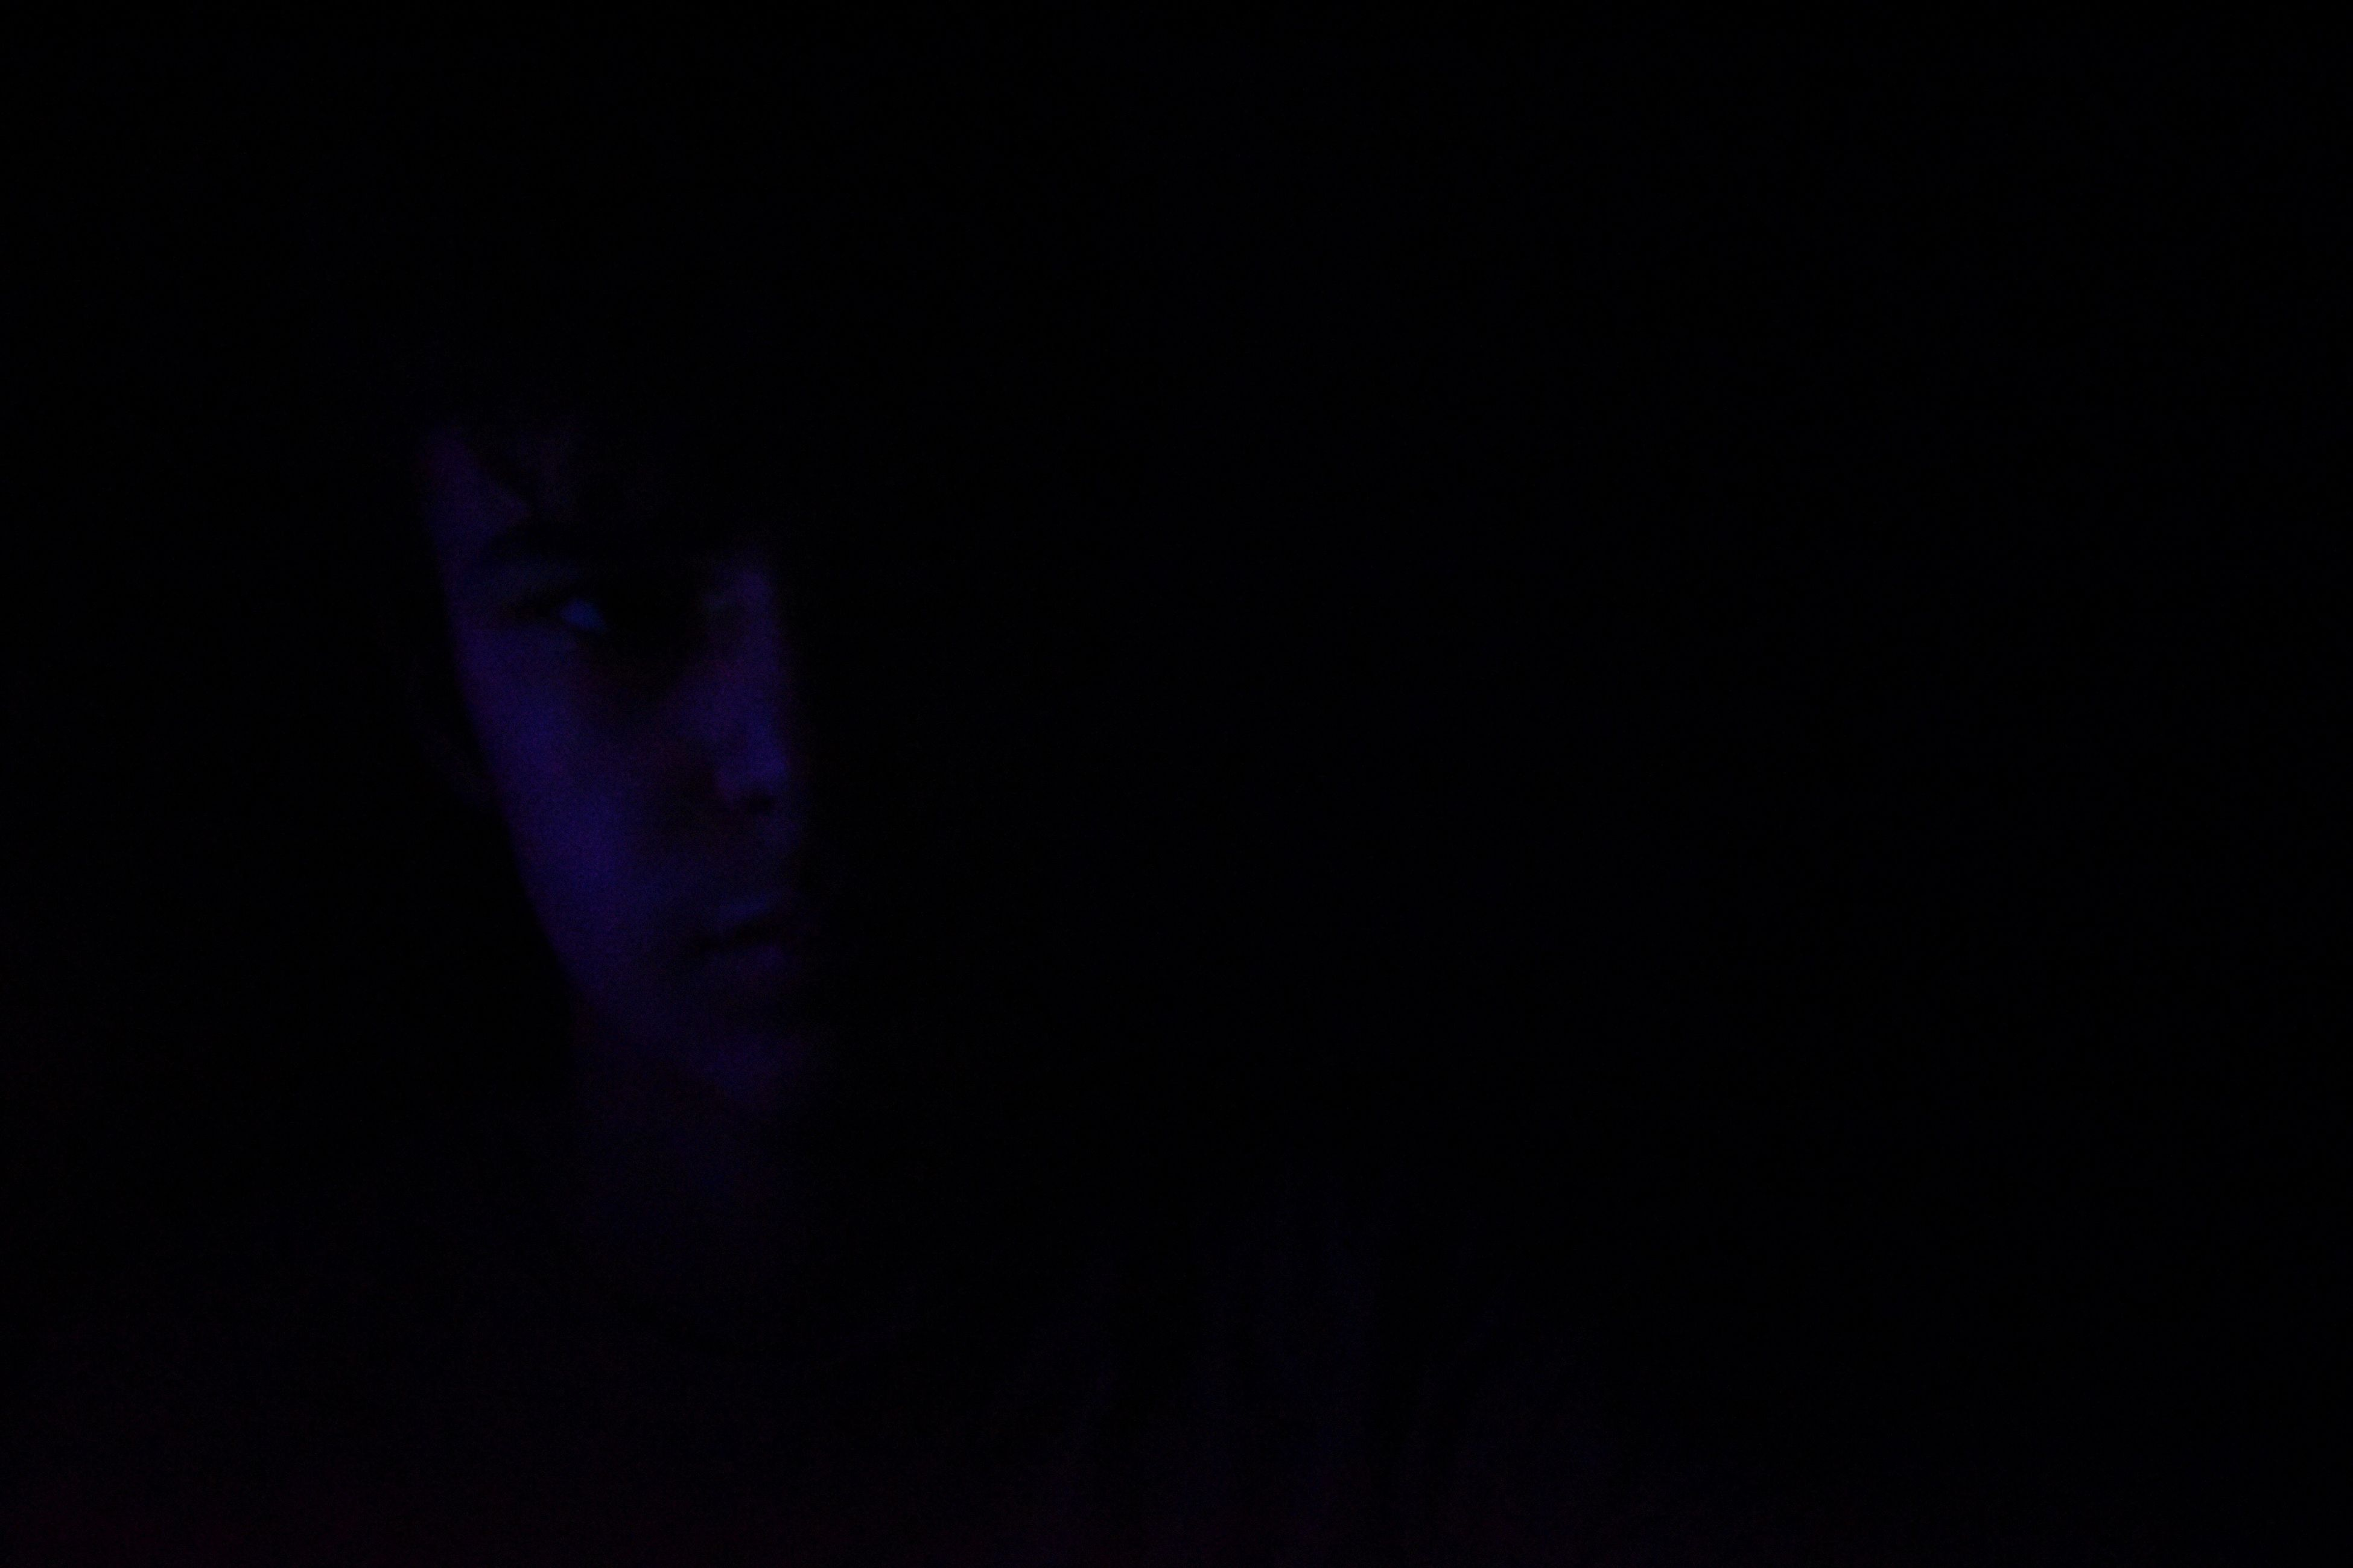 copy space, black background, studio shot, blue, dark, purple, human body part, close-up, real people, darkroom, night, one person, people